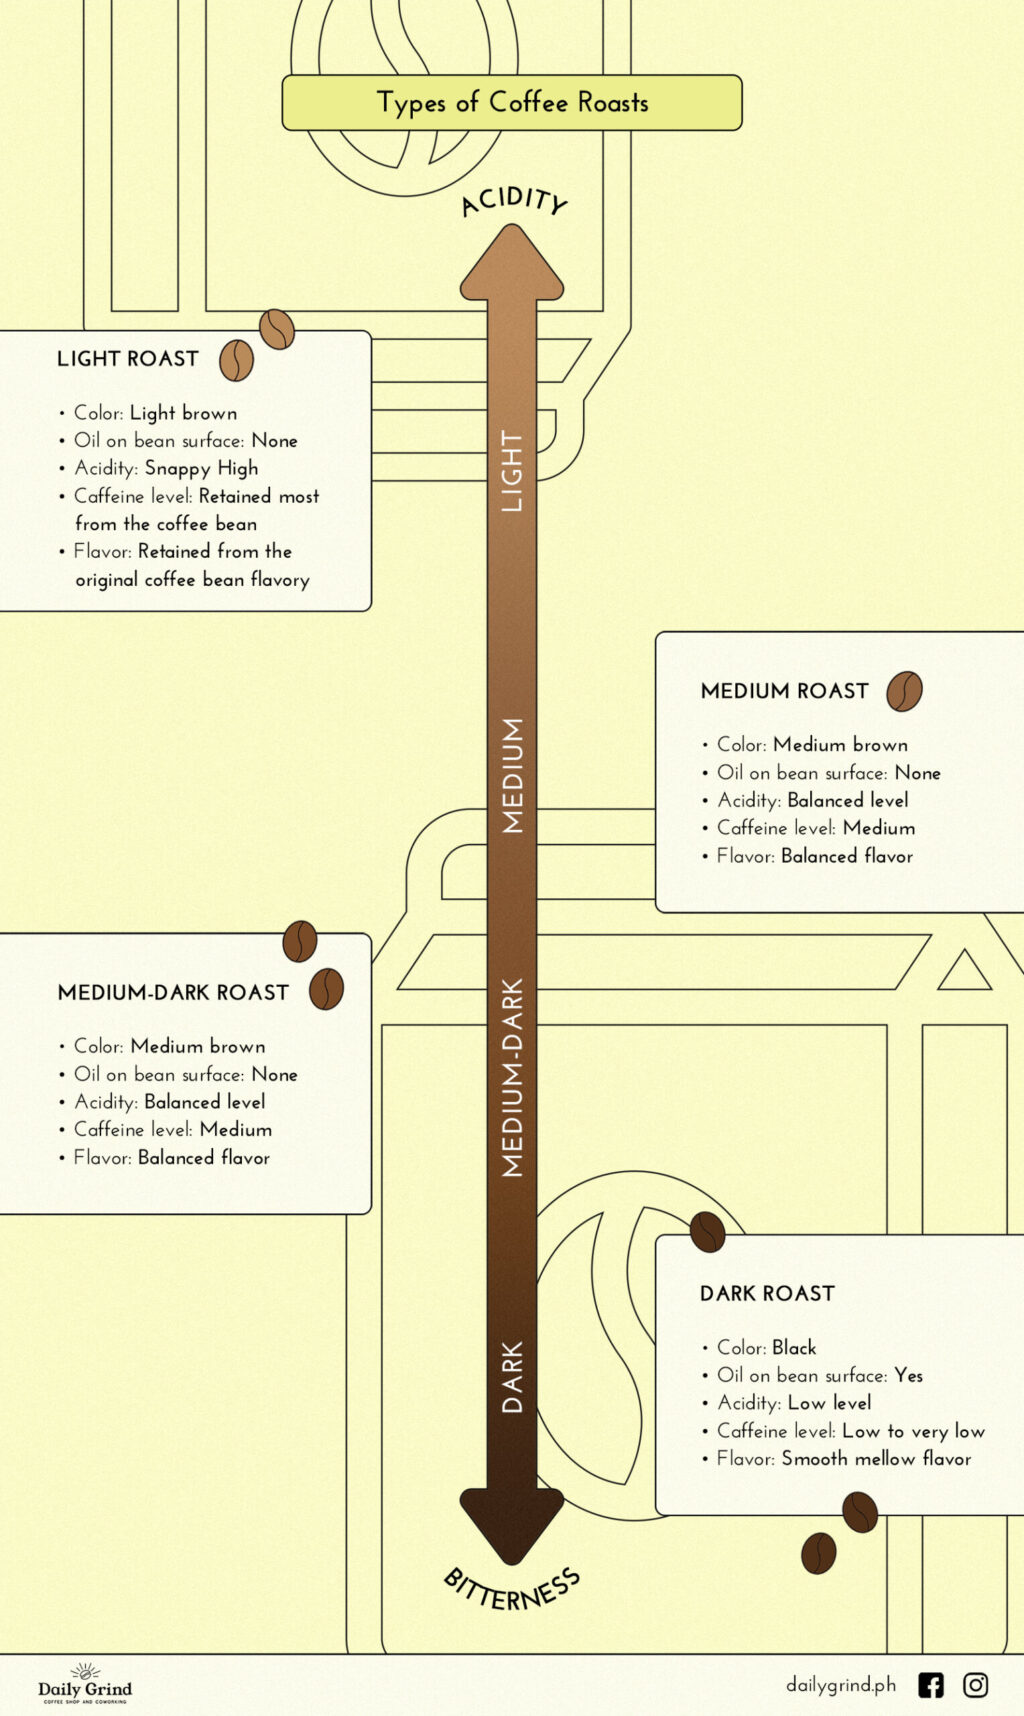 infographic on types of coffee roasts